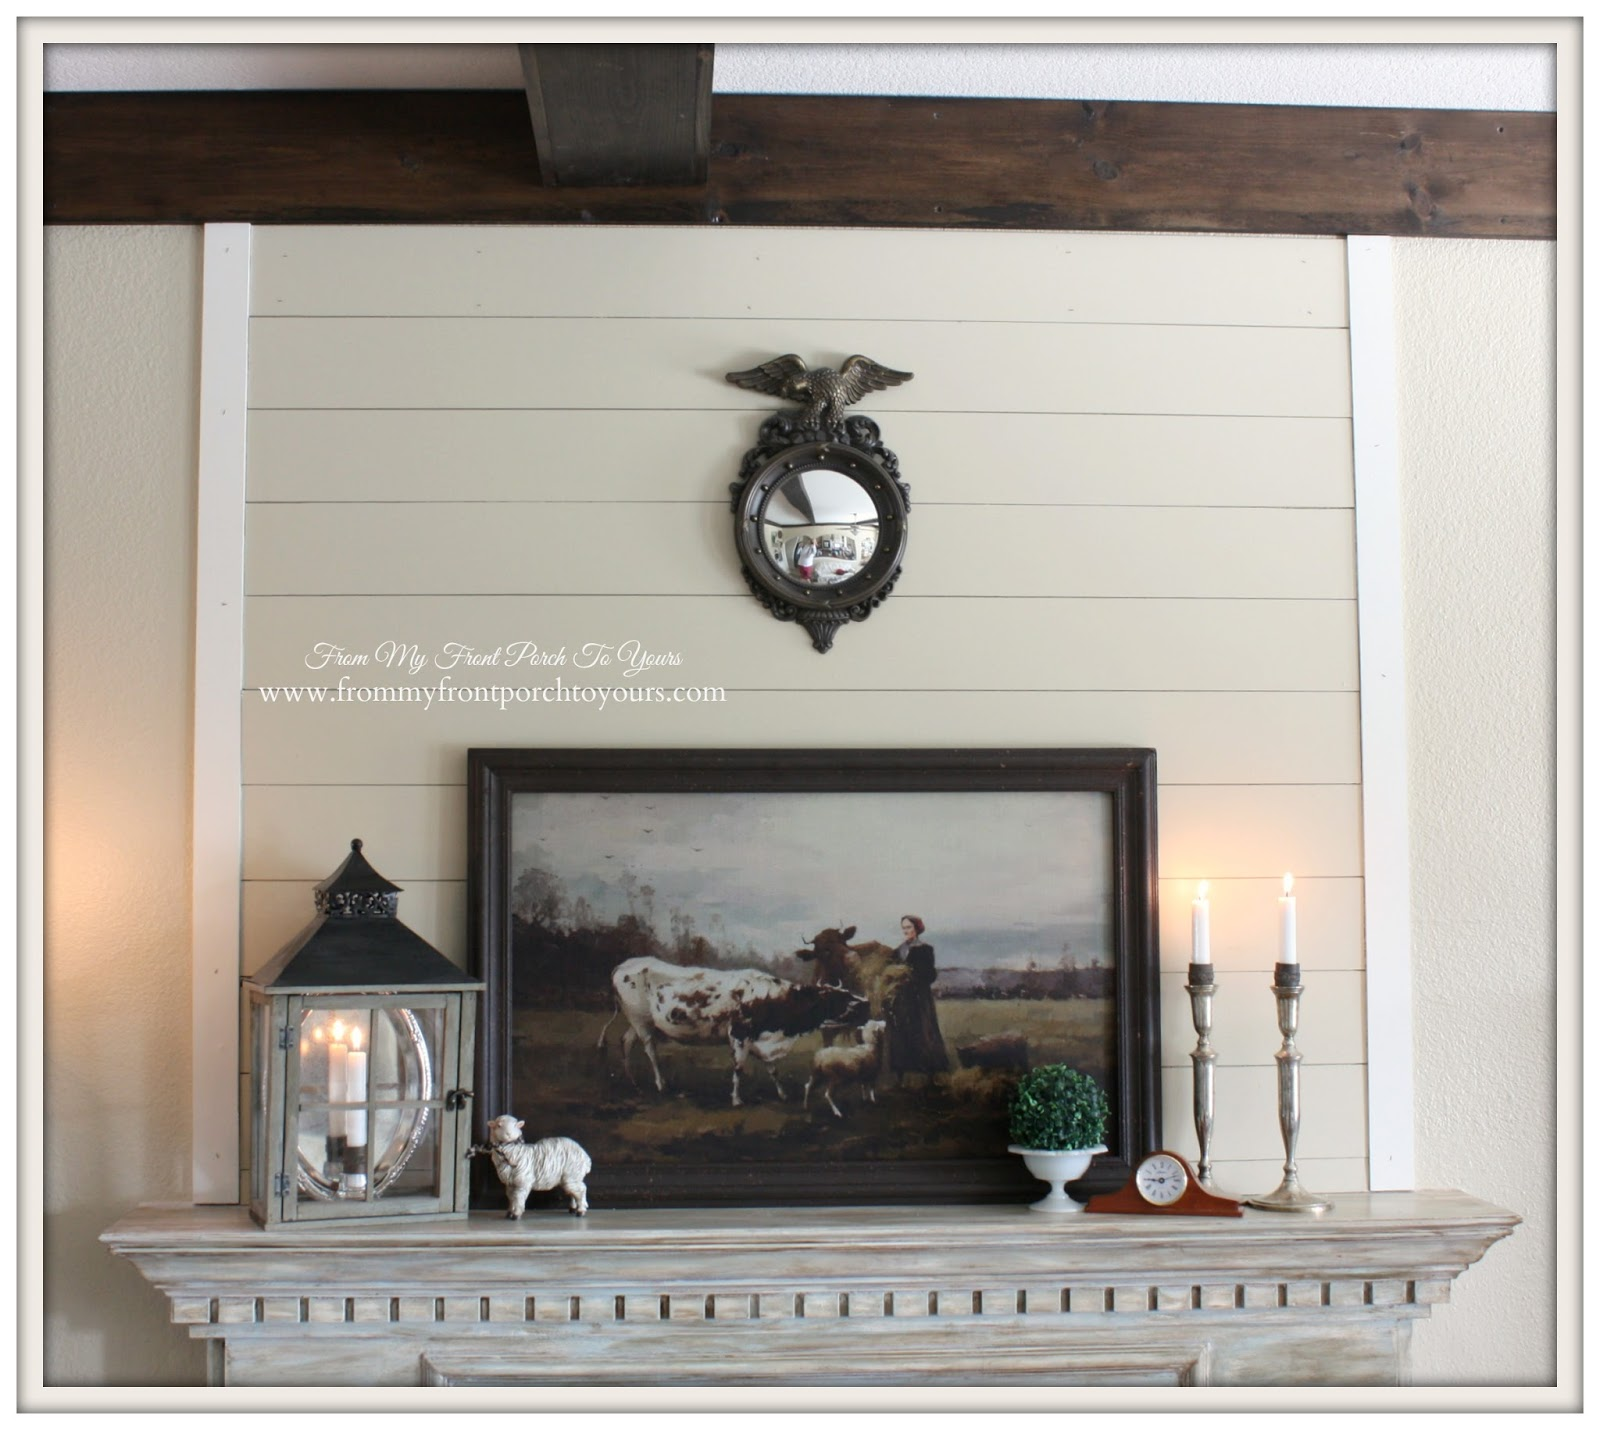 French Country Mantel Vignette- From My Front Porch To Yours